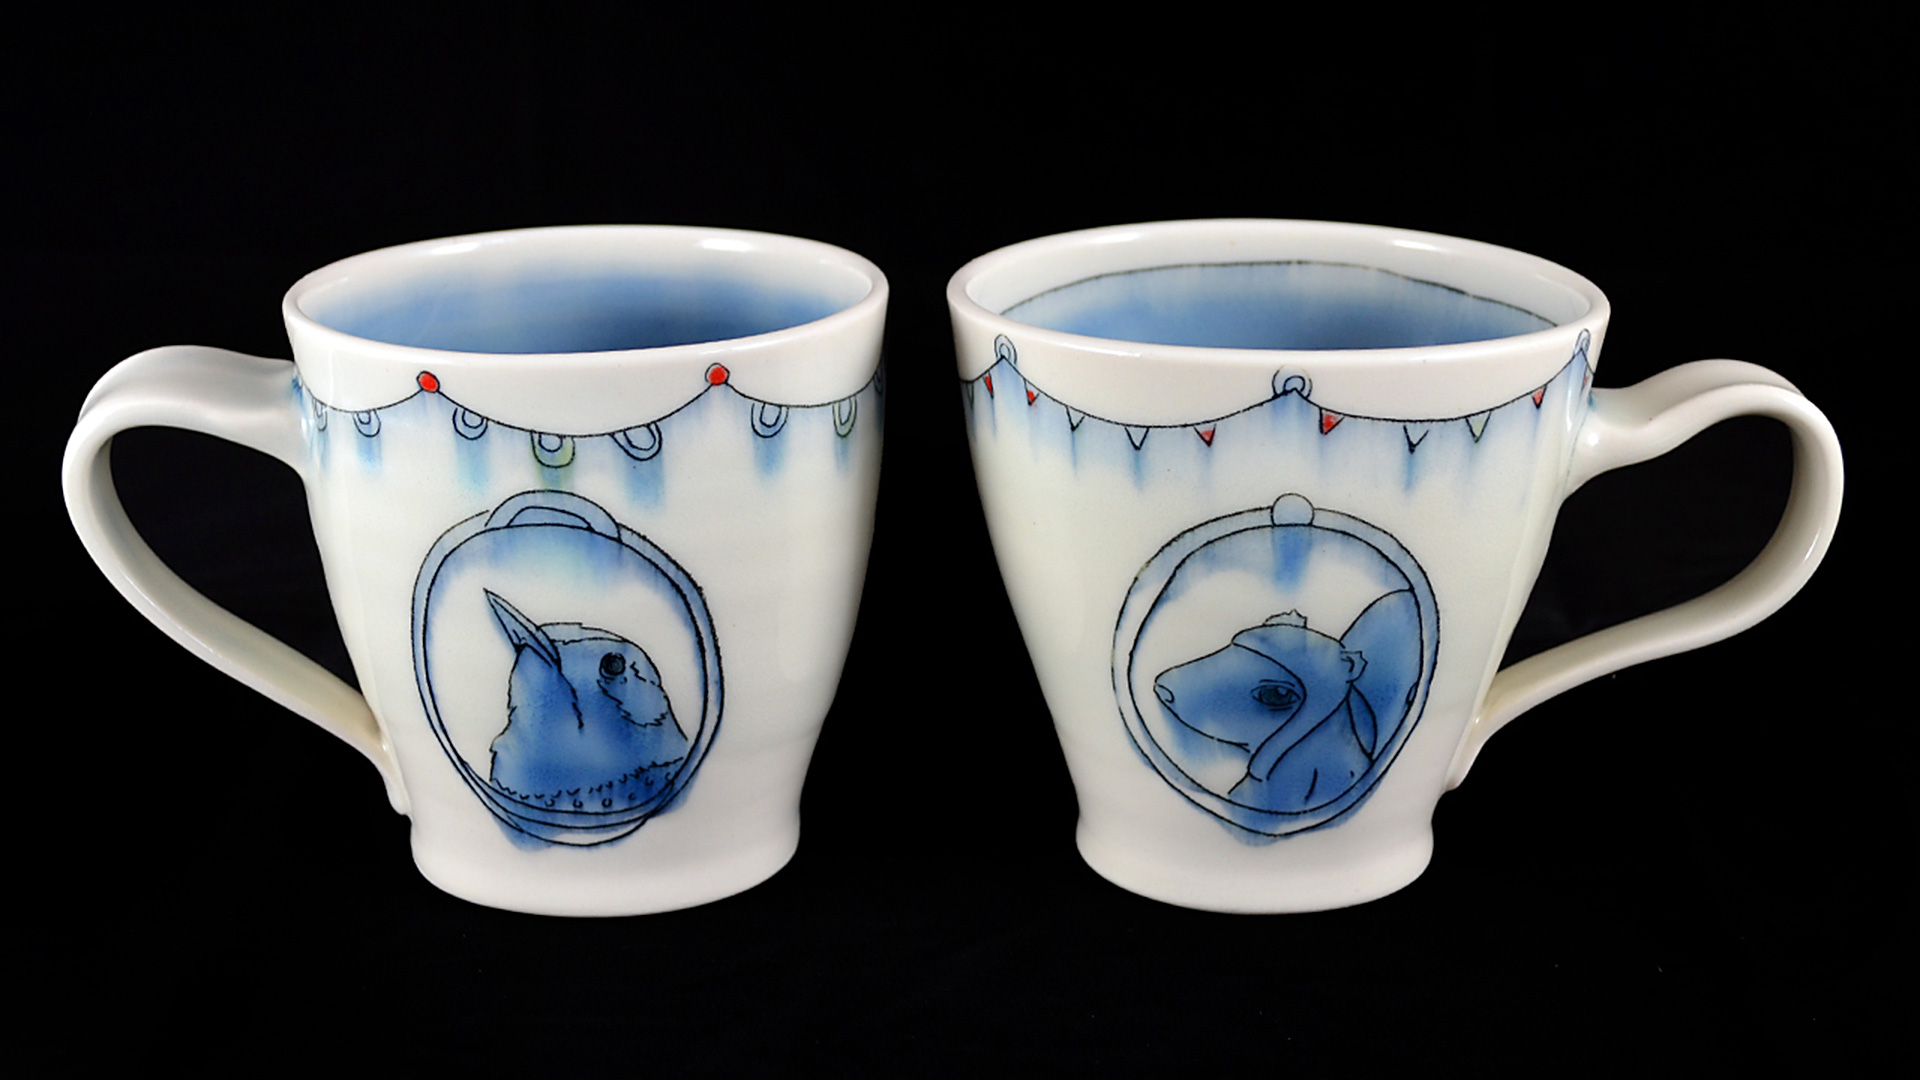 Leah Guerin Ceramic Mugs